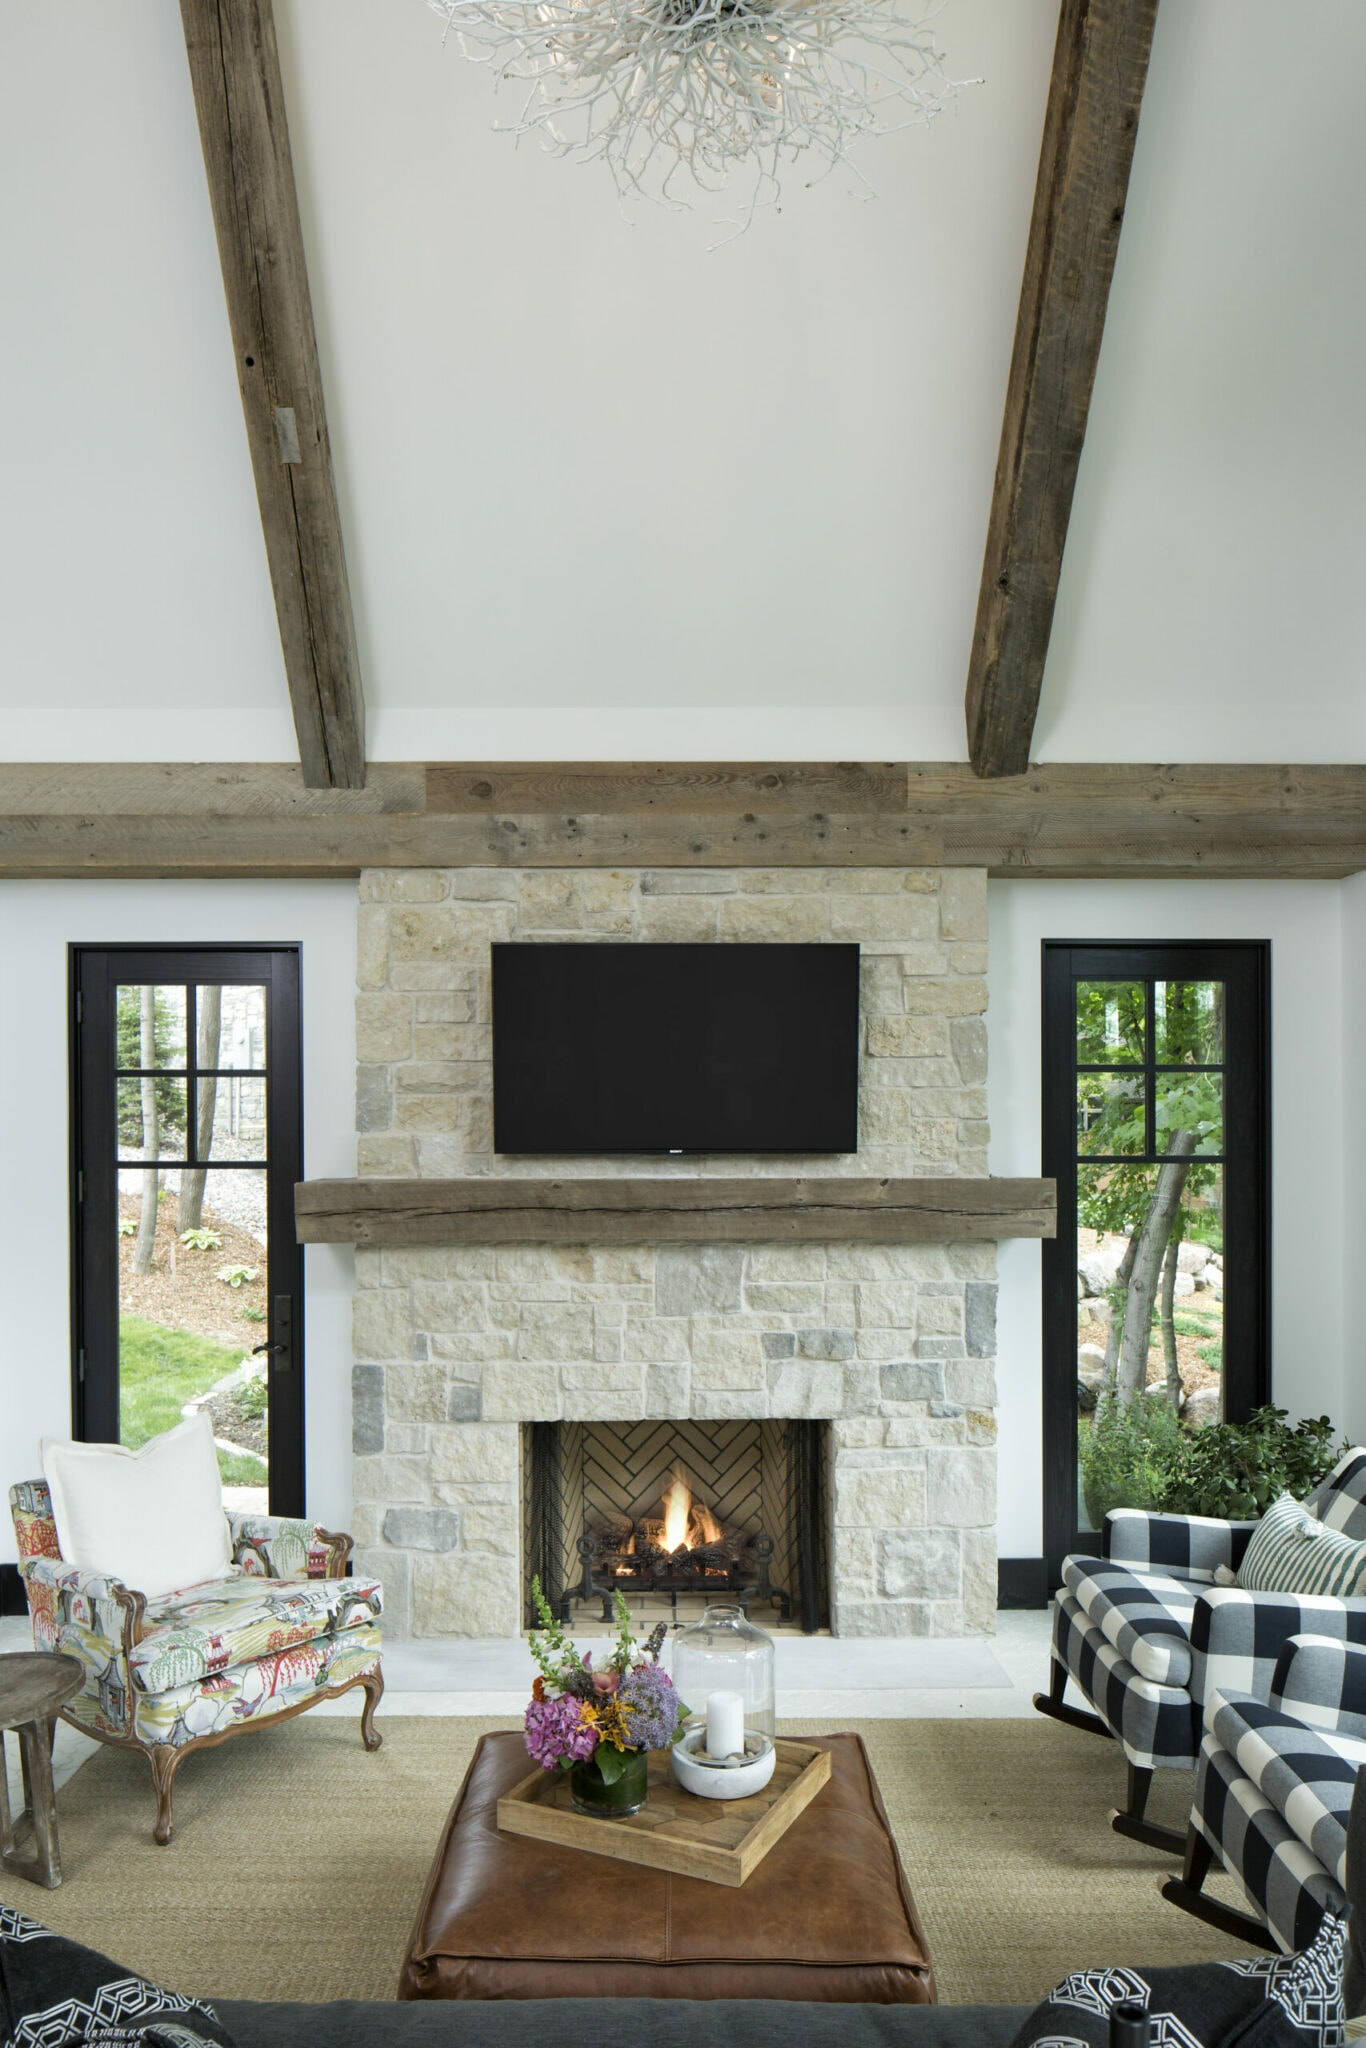 Decorating with wood walls and accents